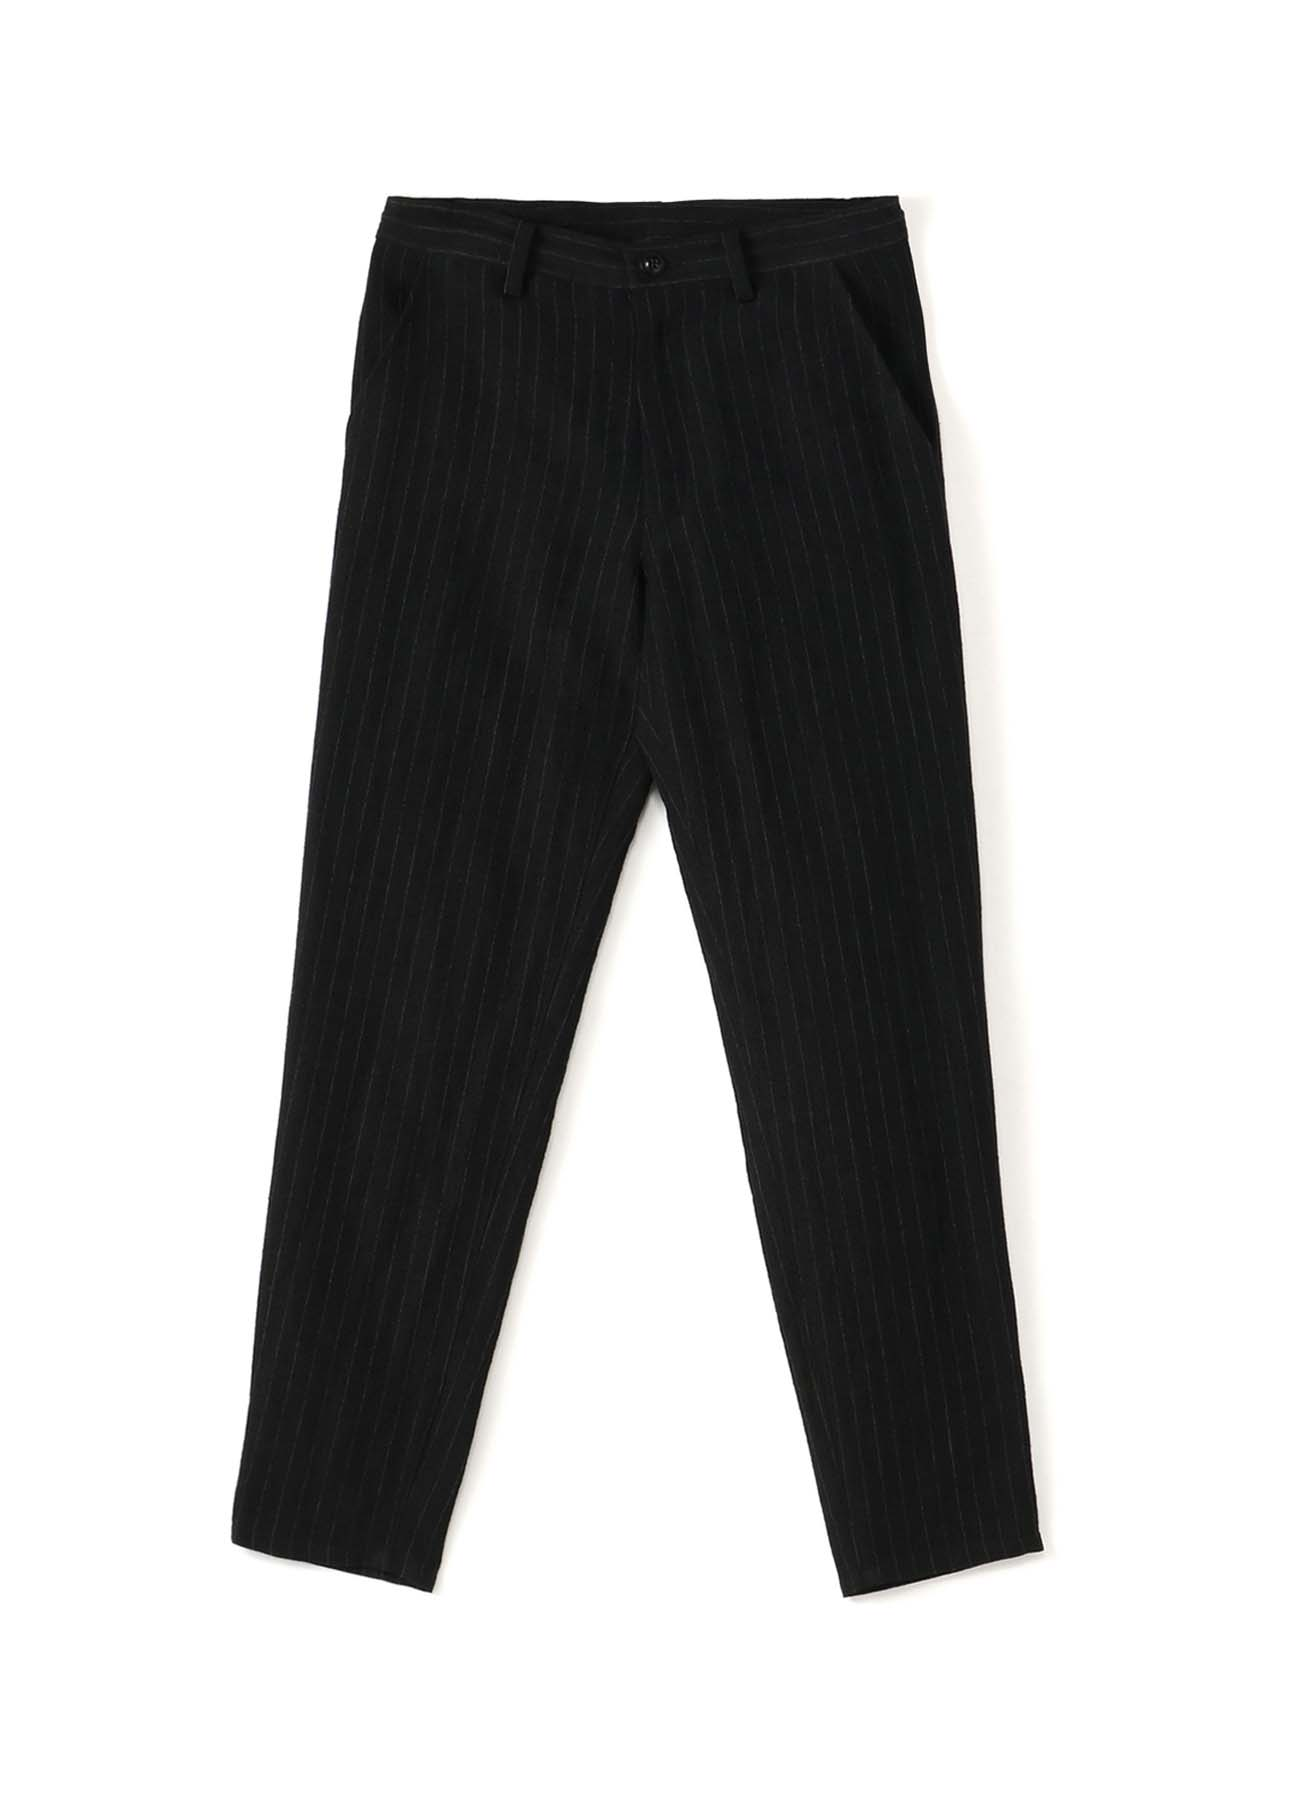 WOOL LINEN PIN STRIPE YARN DYED WAIST STRING THIN PANTS